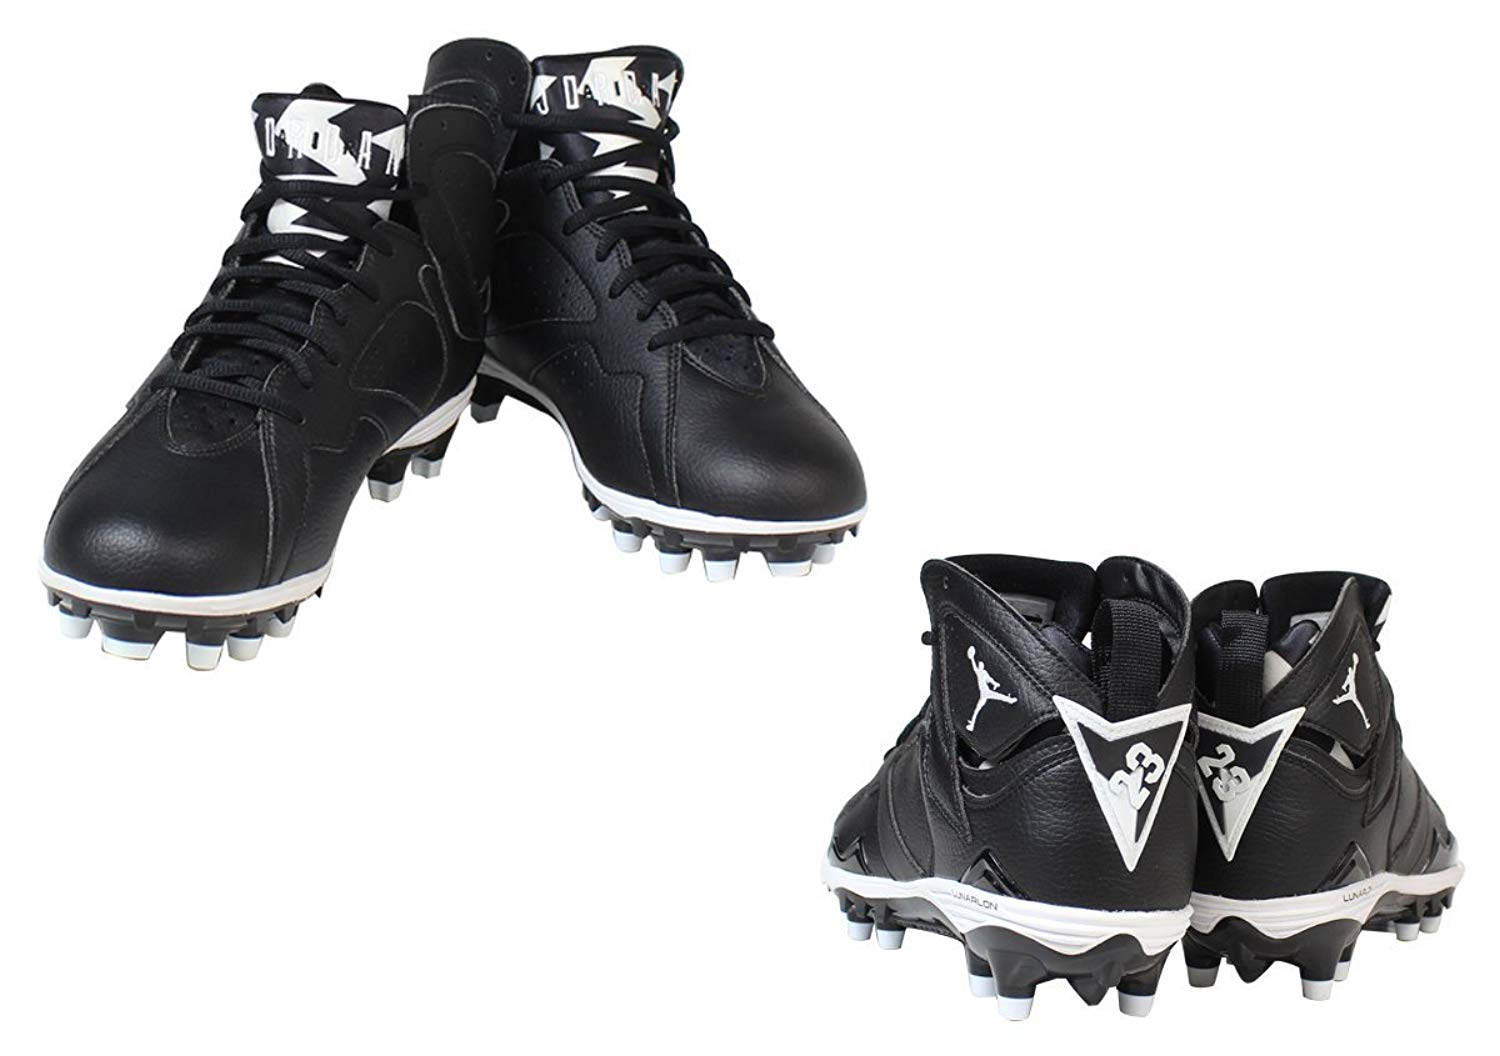 980a58728039 ebay eap sale nike mens air jordan retro 7 td football cleats black white  under discount 46058 e5cfb  denmark nike air jordan 7 retro td nike air  jordan 7 ...